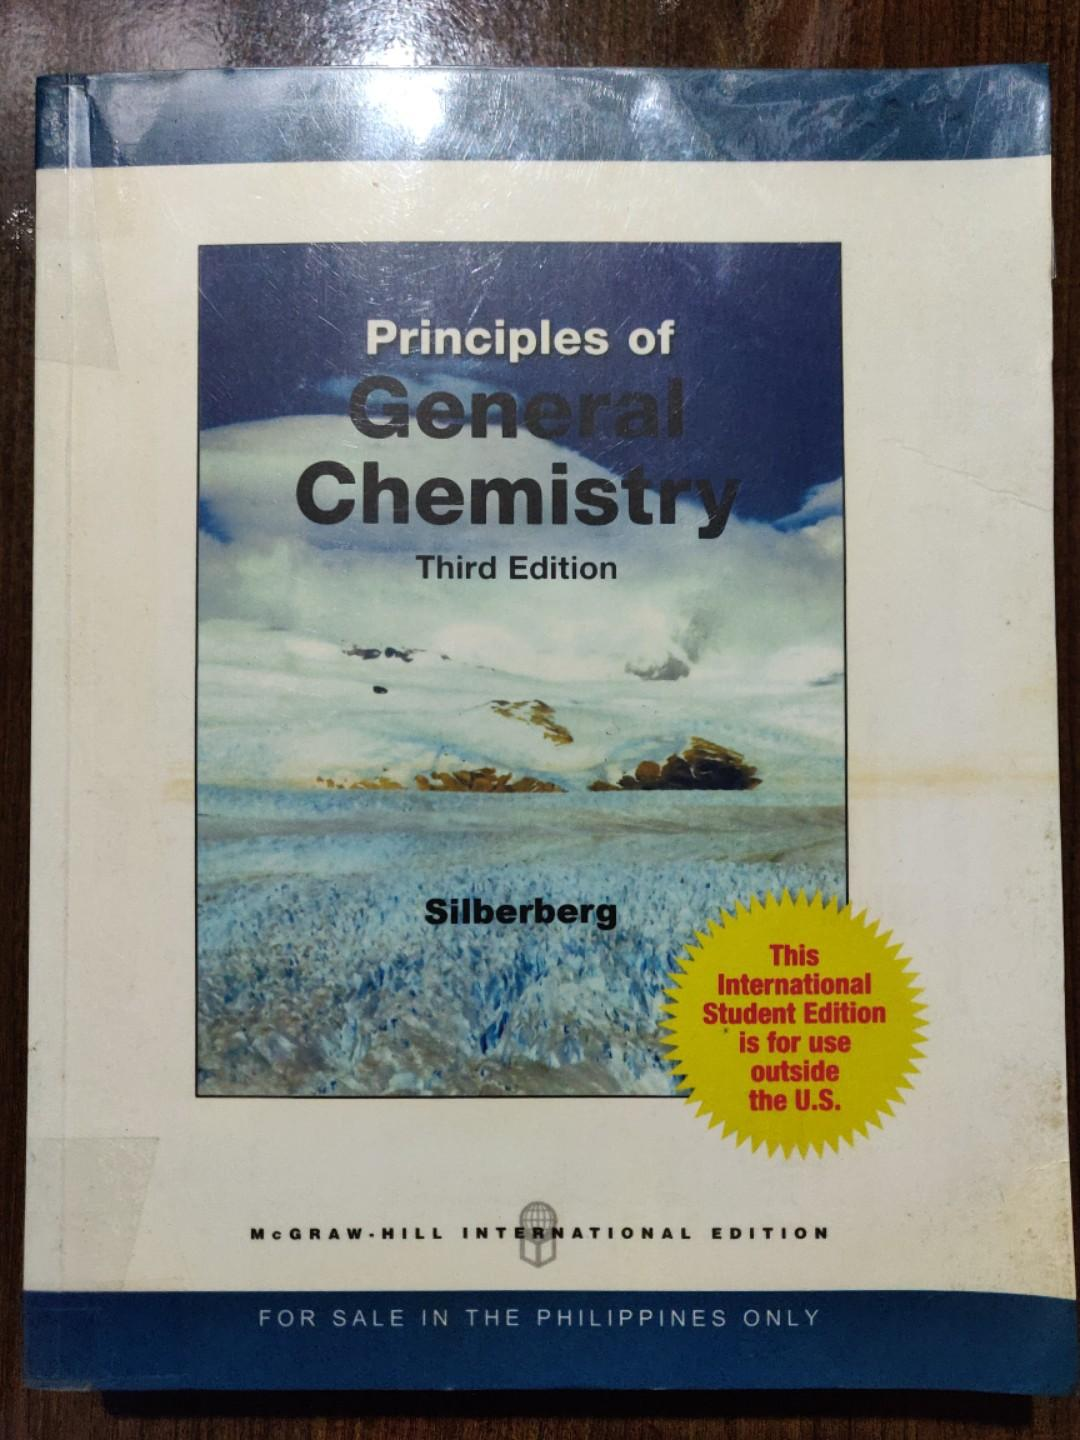 Principles Of General Chemistry 3rd Edition By Silberberg Hobbies Toys Books Magazines Textbooks On Carousell